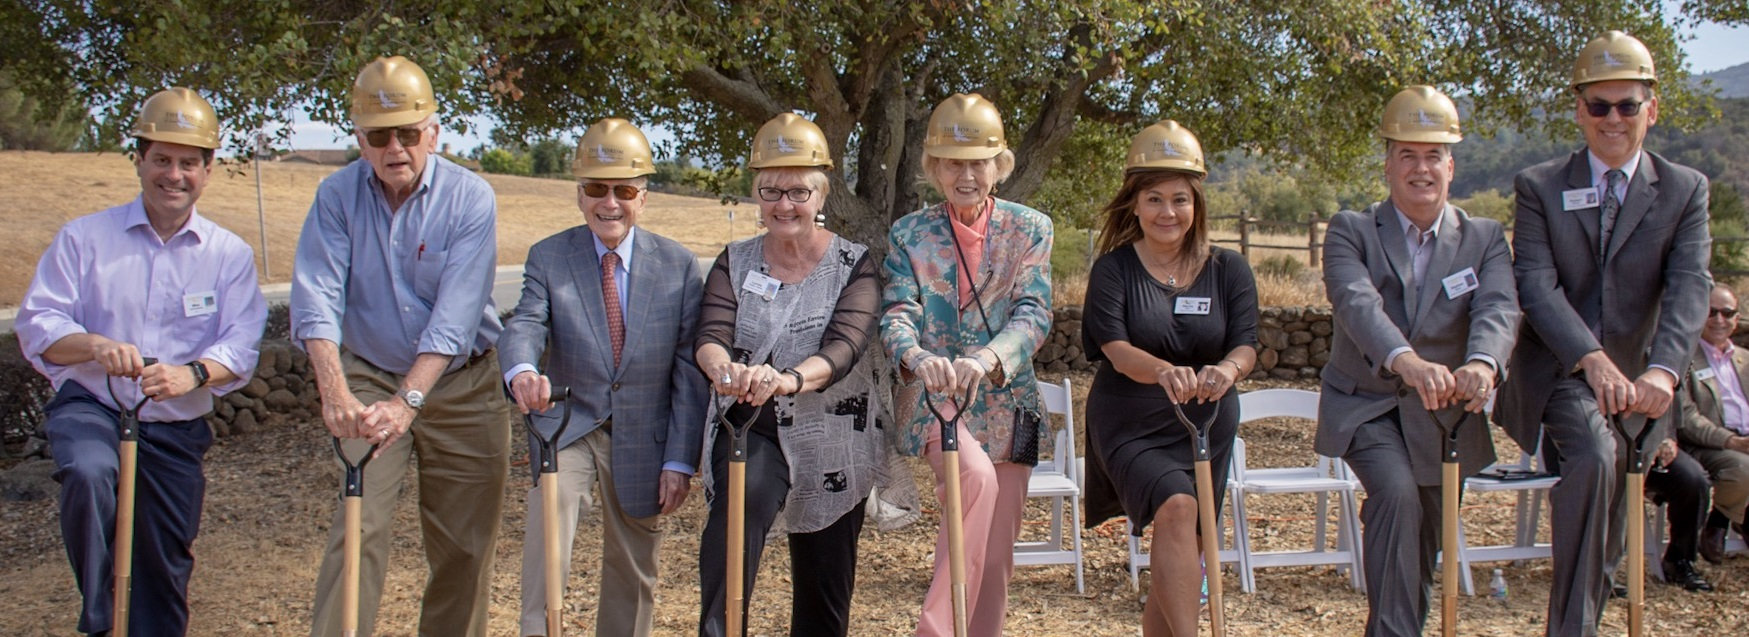 Mary elizabeth and crew groundbreaking